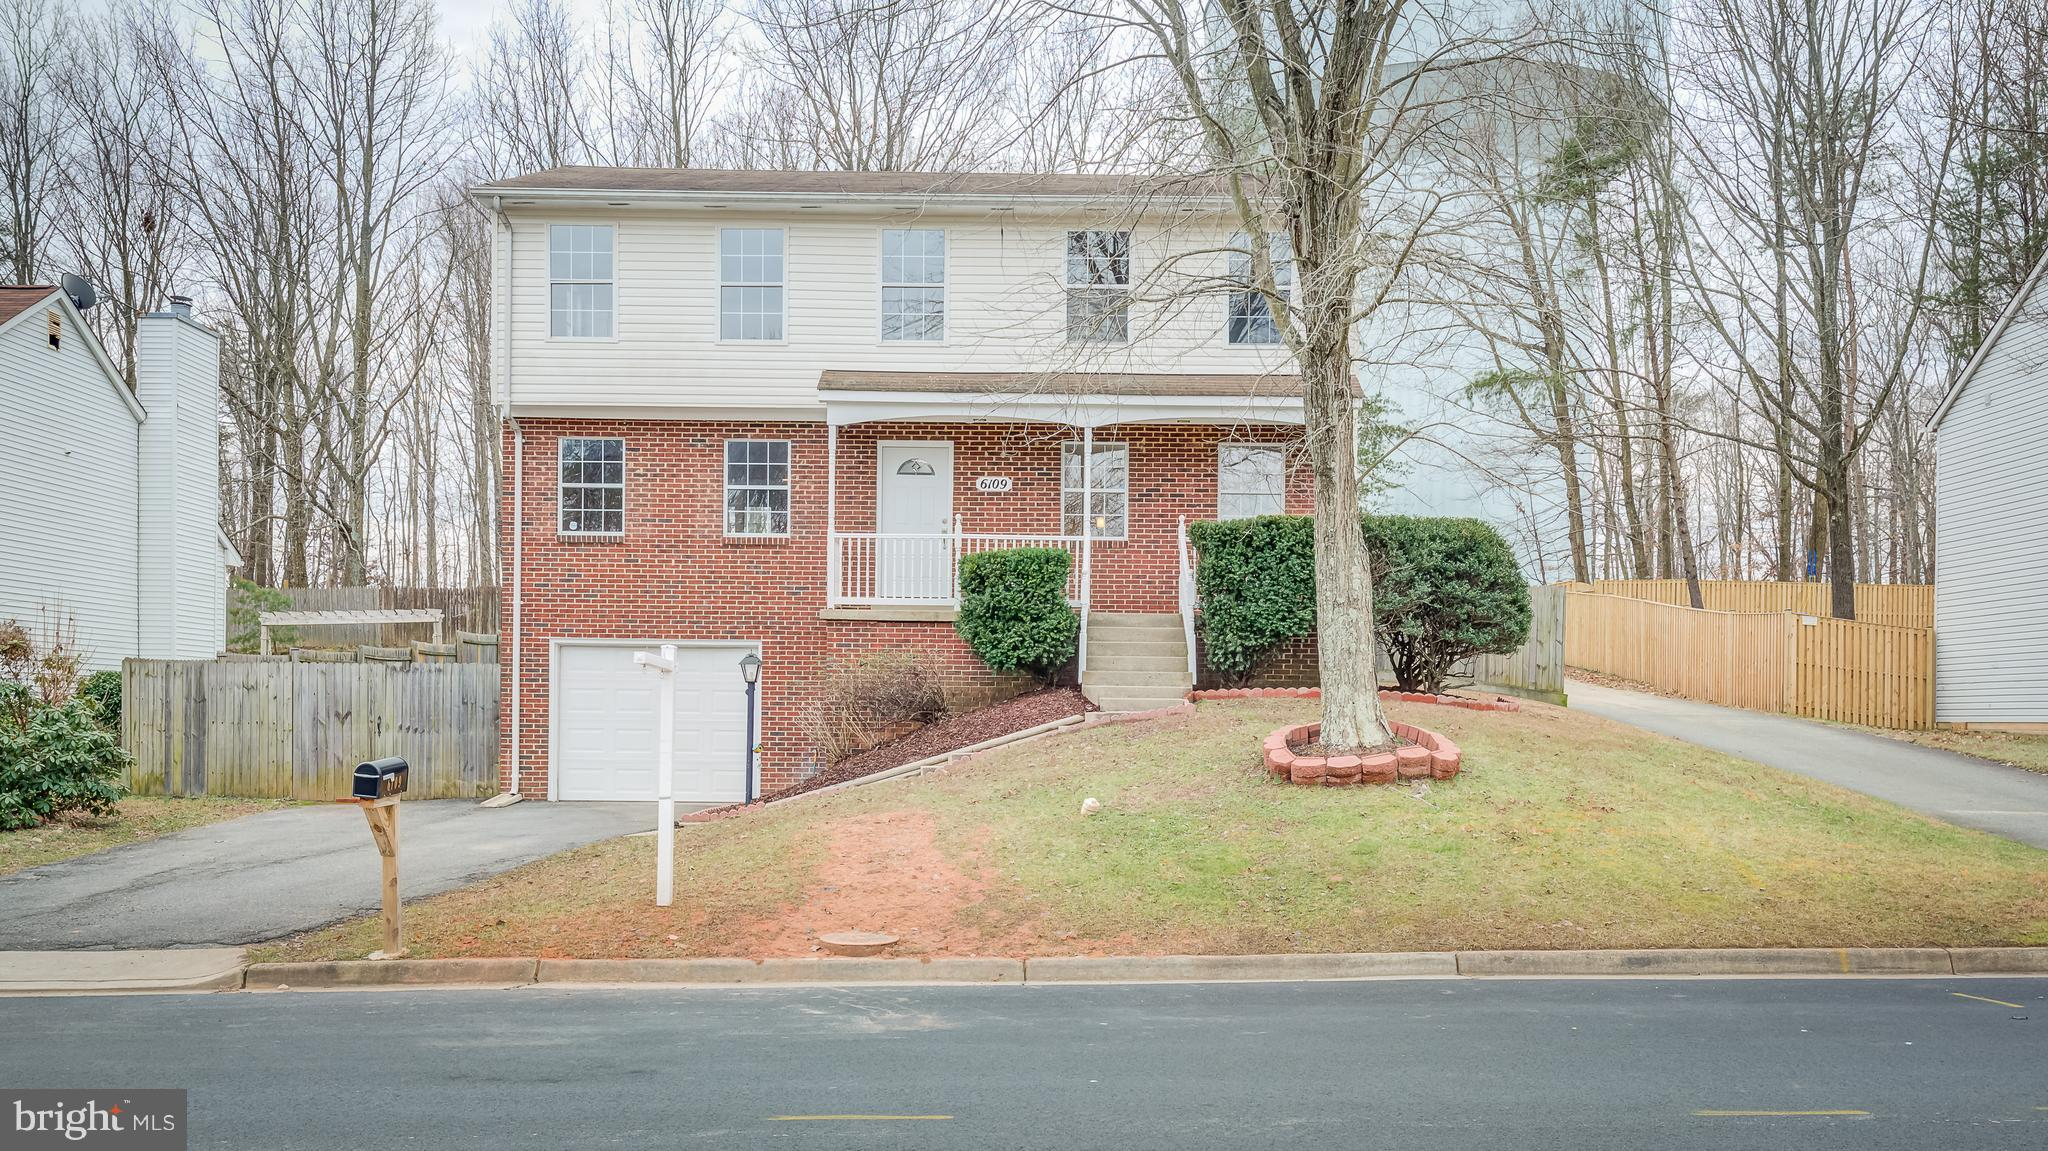 Beautiful totally remodel single family home 4 Bed 2 1/2 bath,  kitchen with stainless steel appliances, granite counters,  House new floors, doors, paint, fixtures, The basement is completely finished. complete new plumbing throughout  the house, new water heater, hvac and much more...